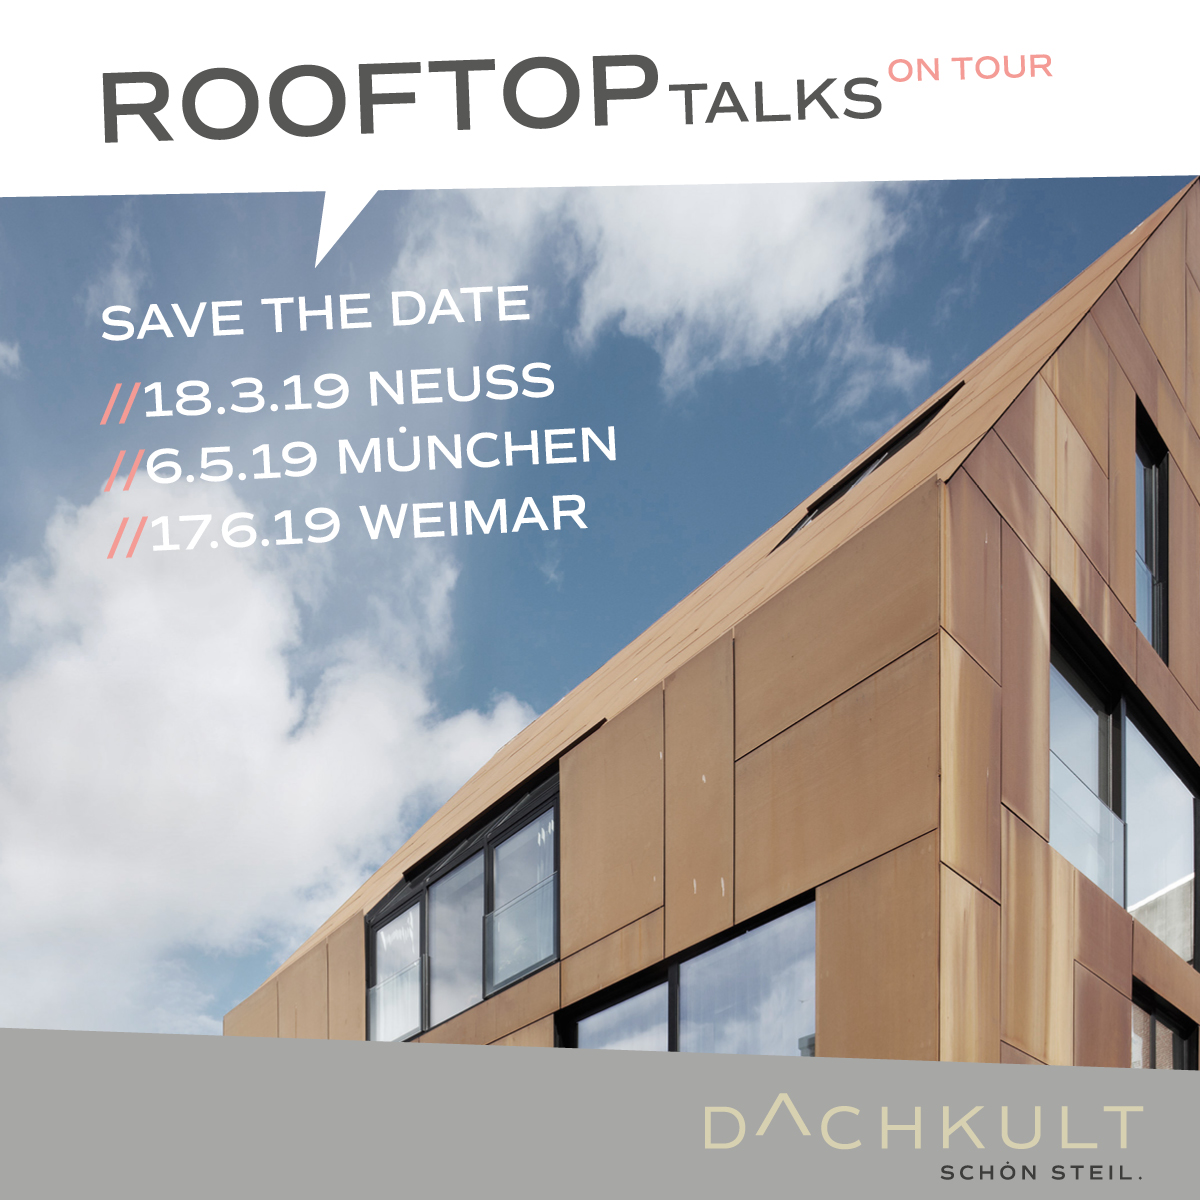 DACHKULT - Rooftop Talks on Tour